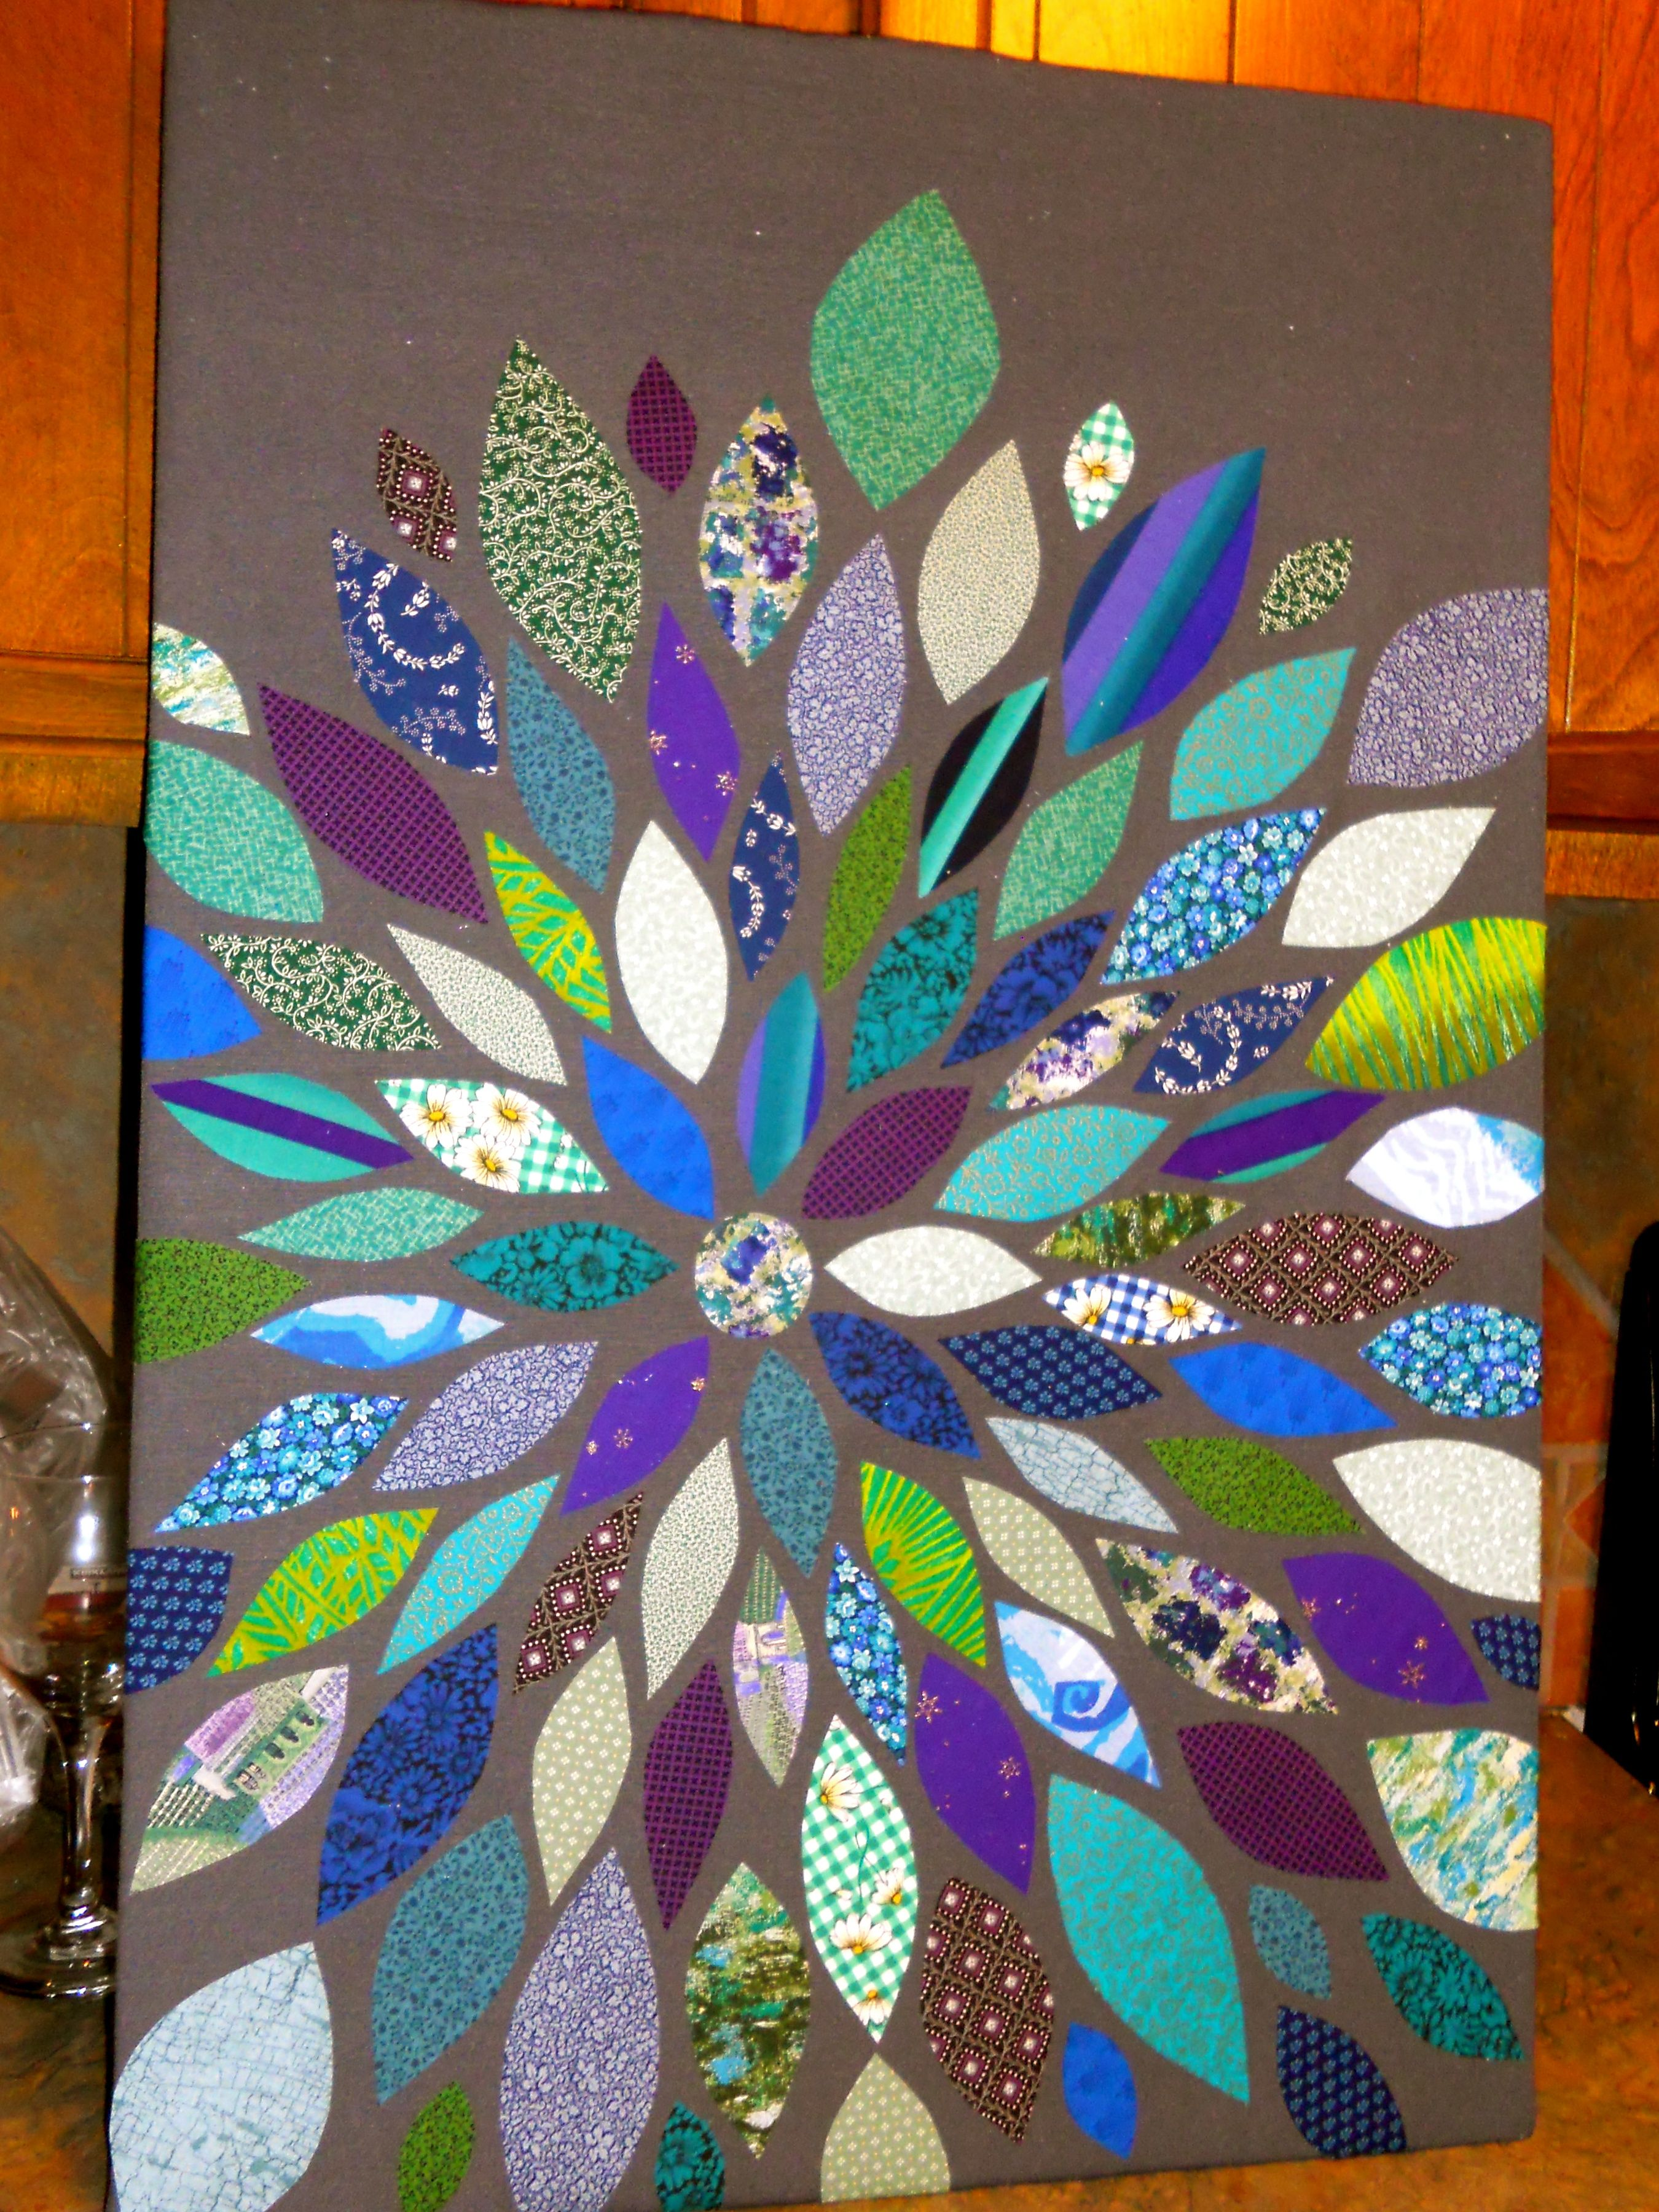 Fabric Wall Art. I could do this with fabric scraps from